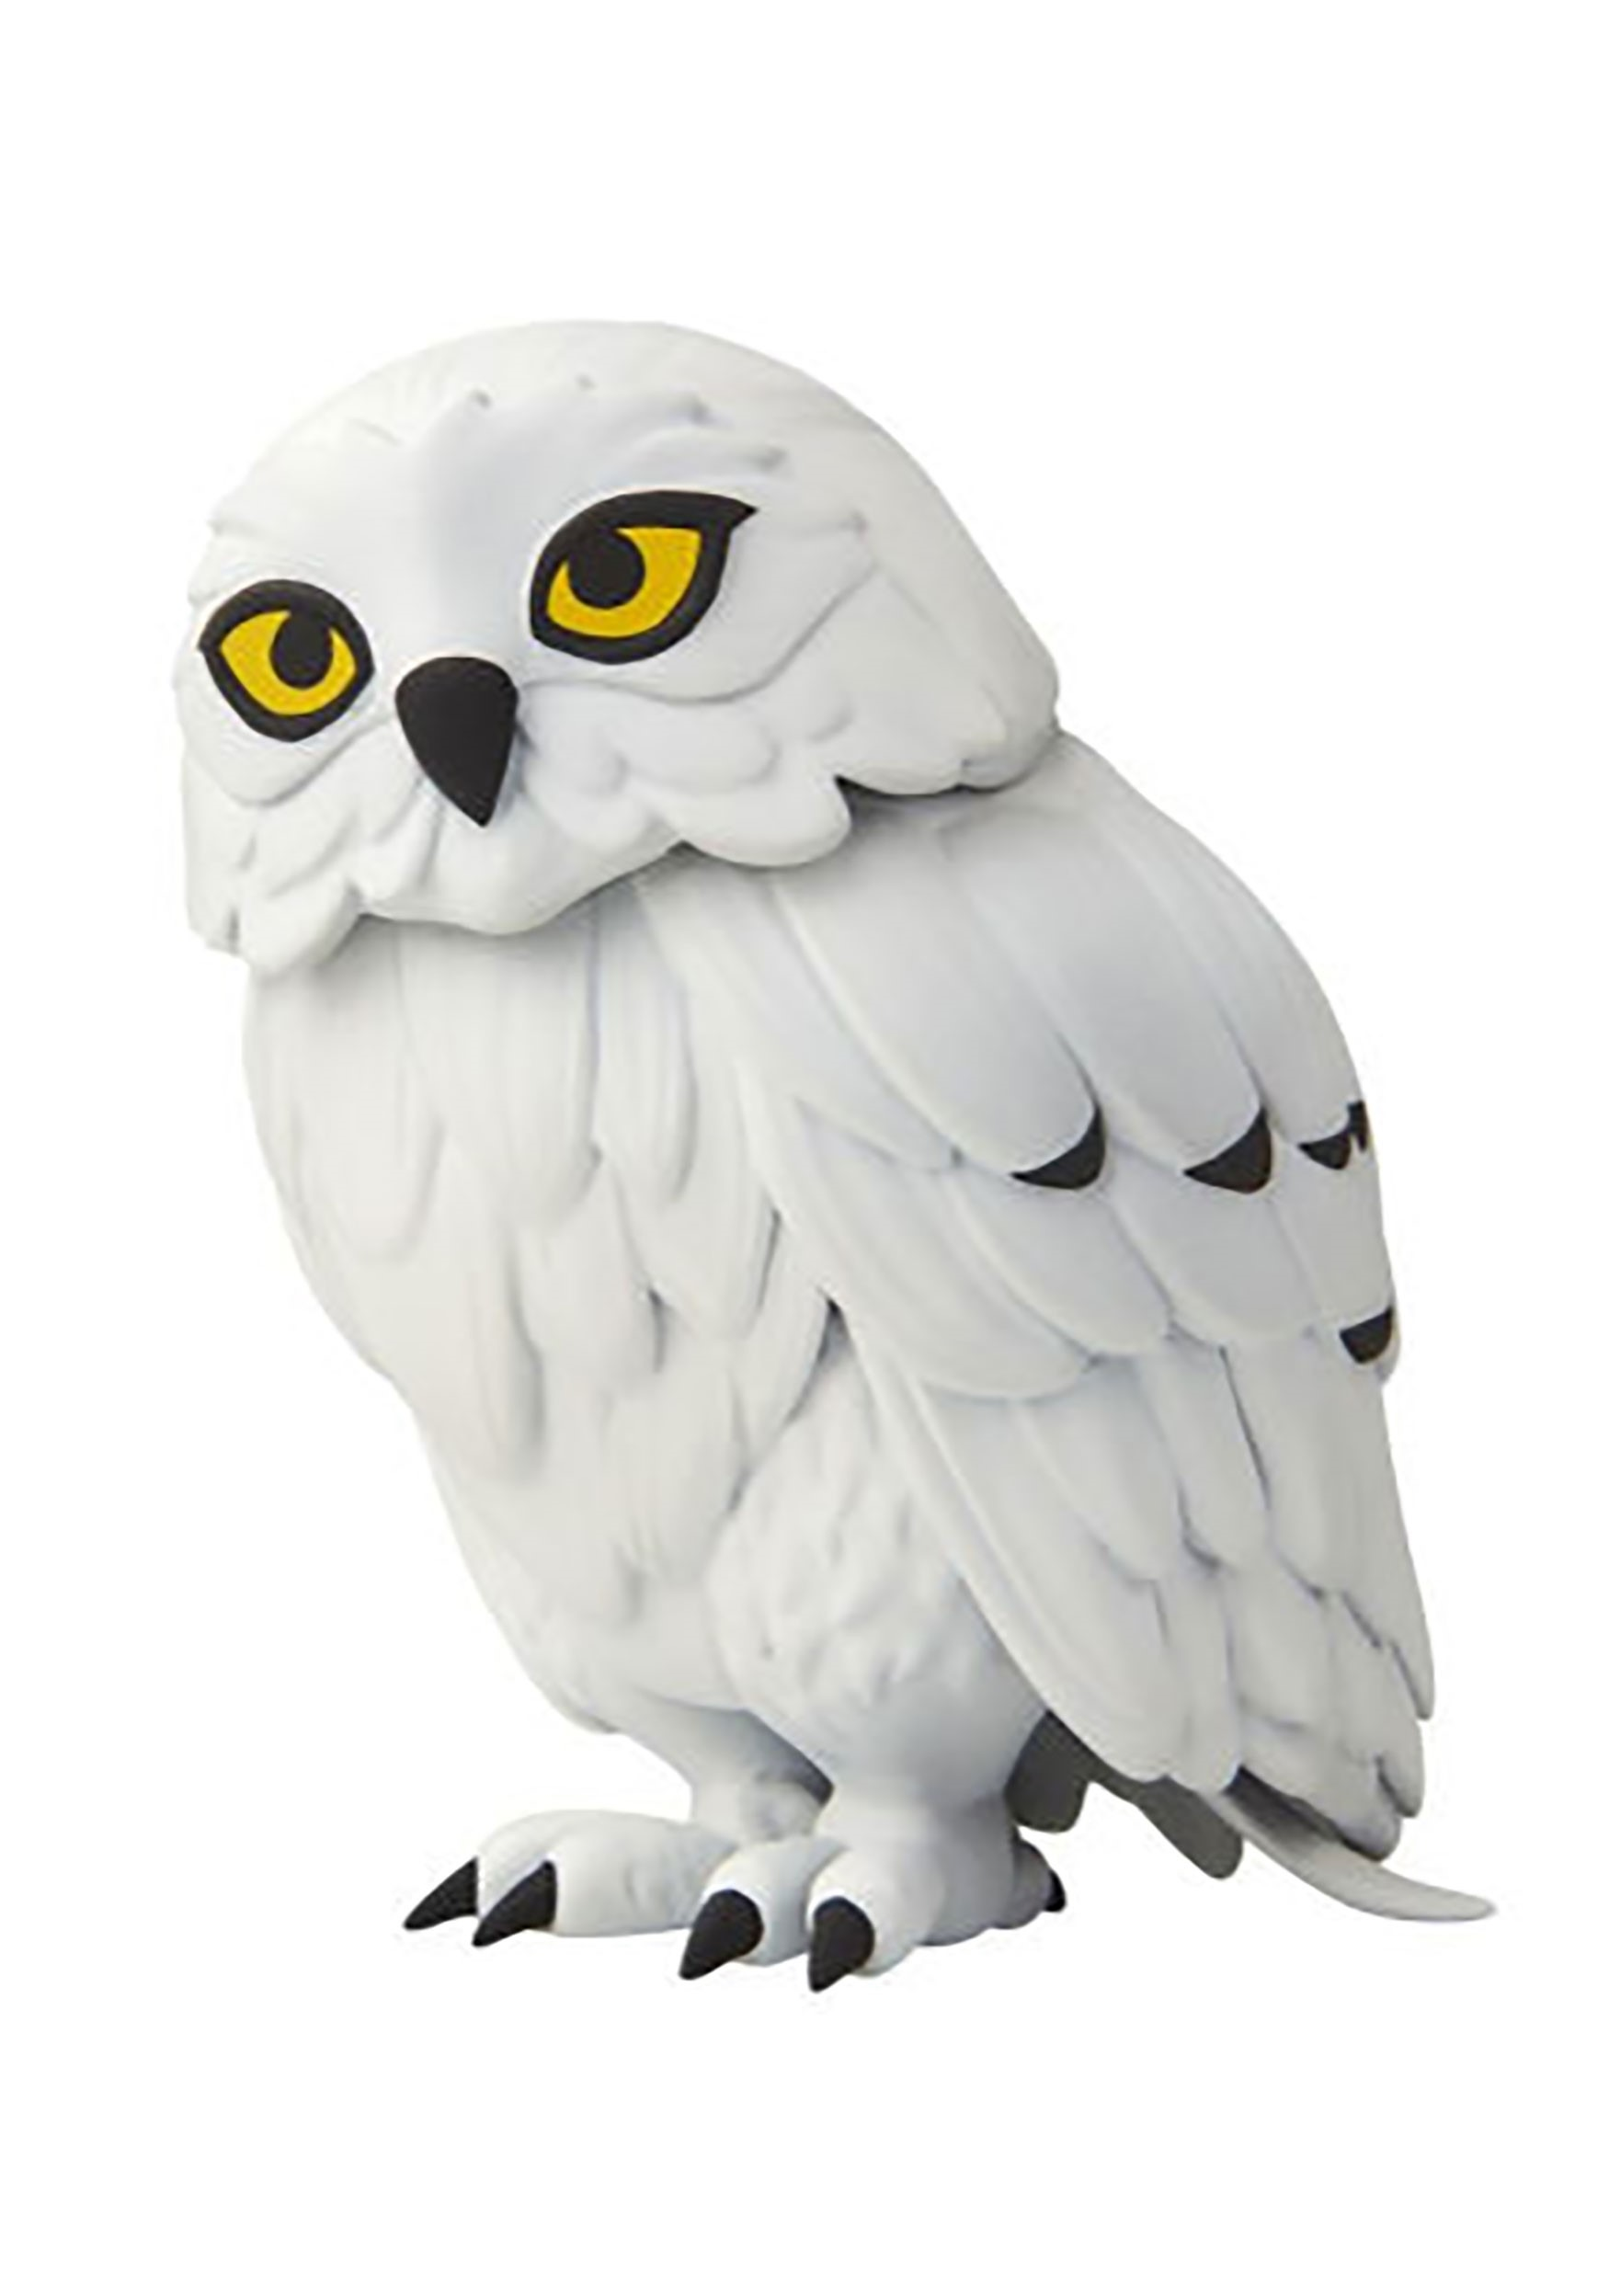 Harry Potter Interactive Creature Owl Hedwig